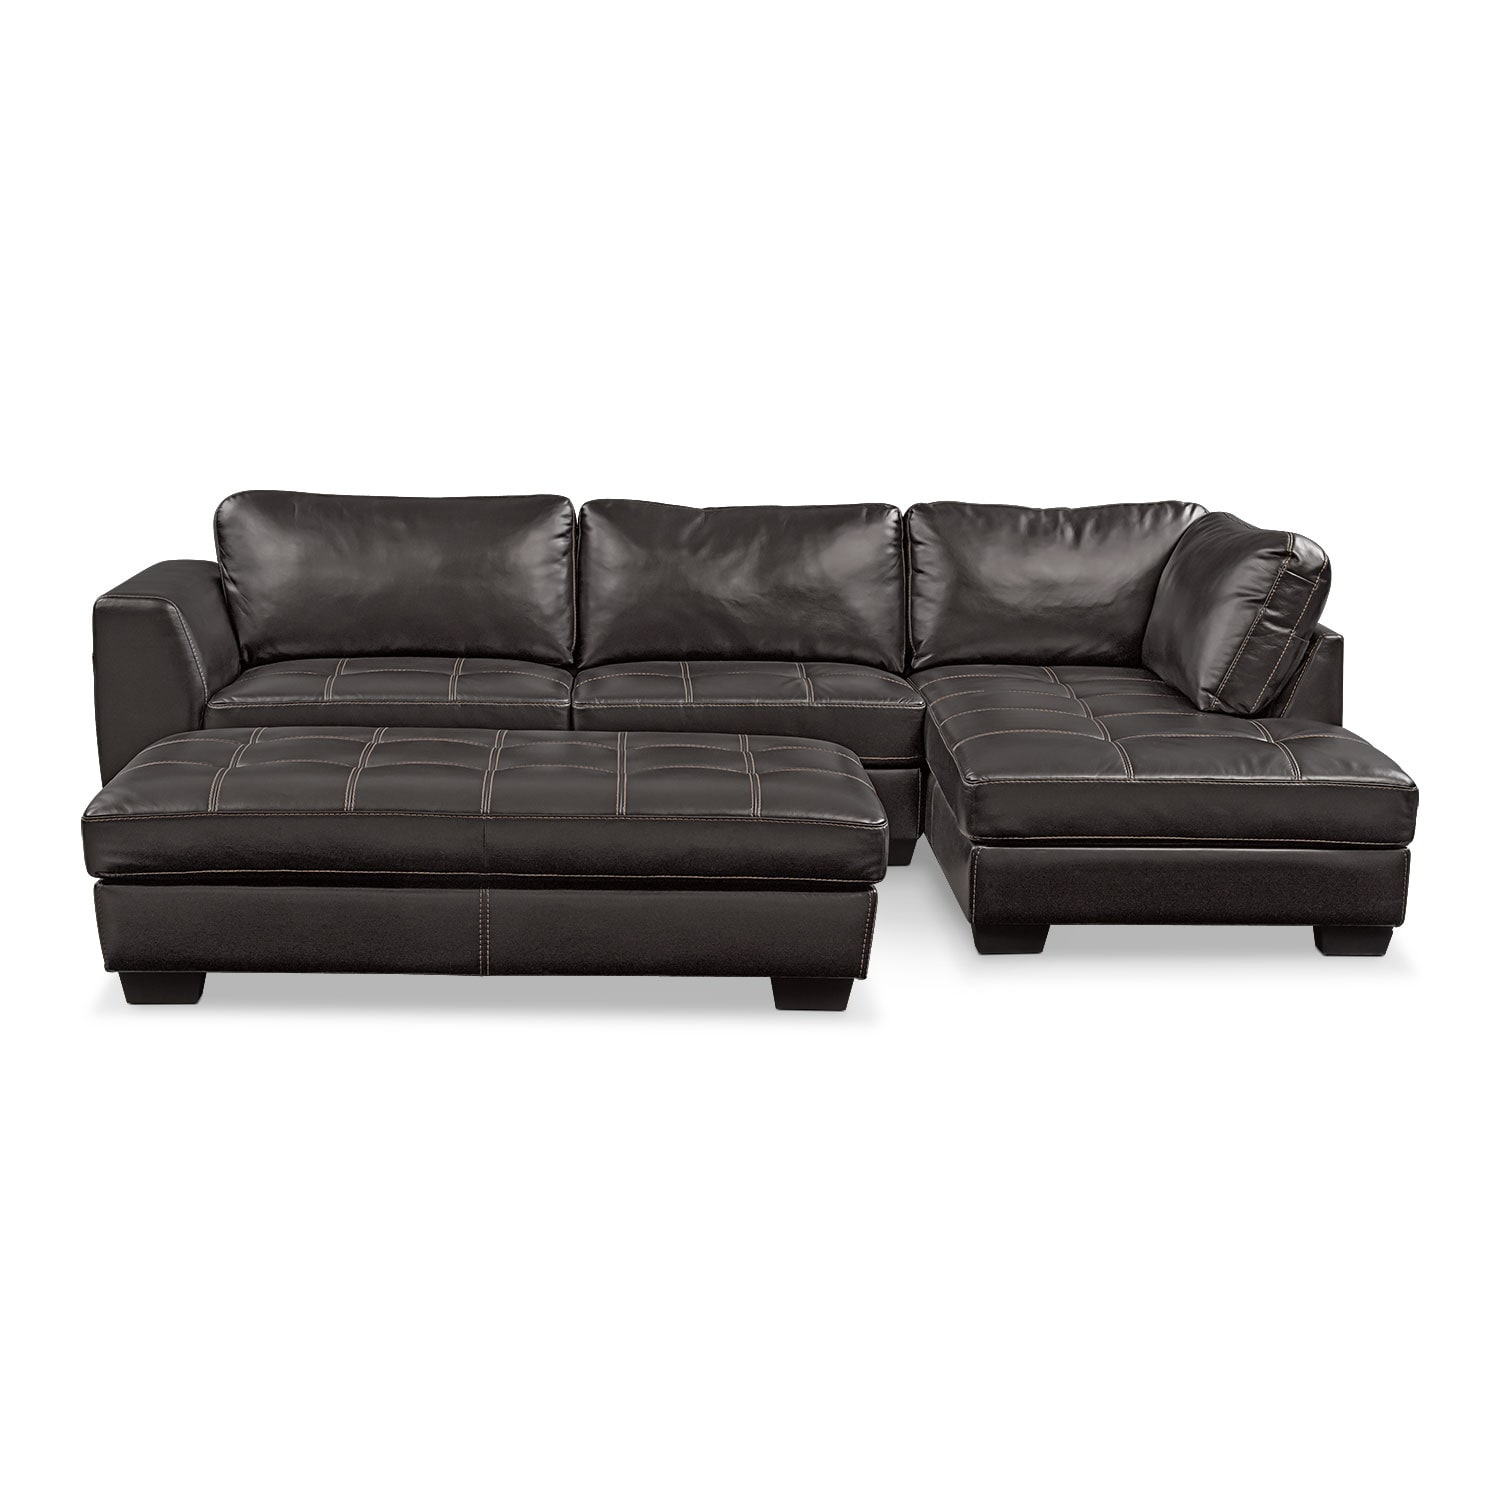 Santana 2 Piece Sectional with Right Facing Chaise and Cocktail